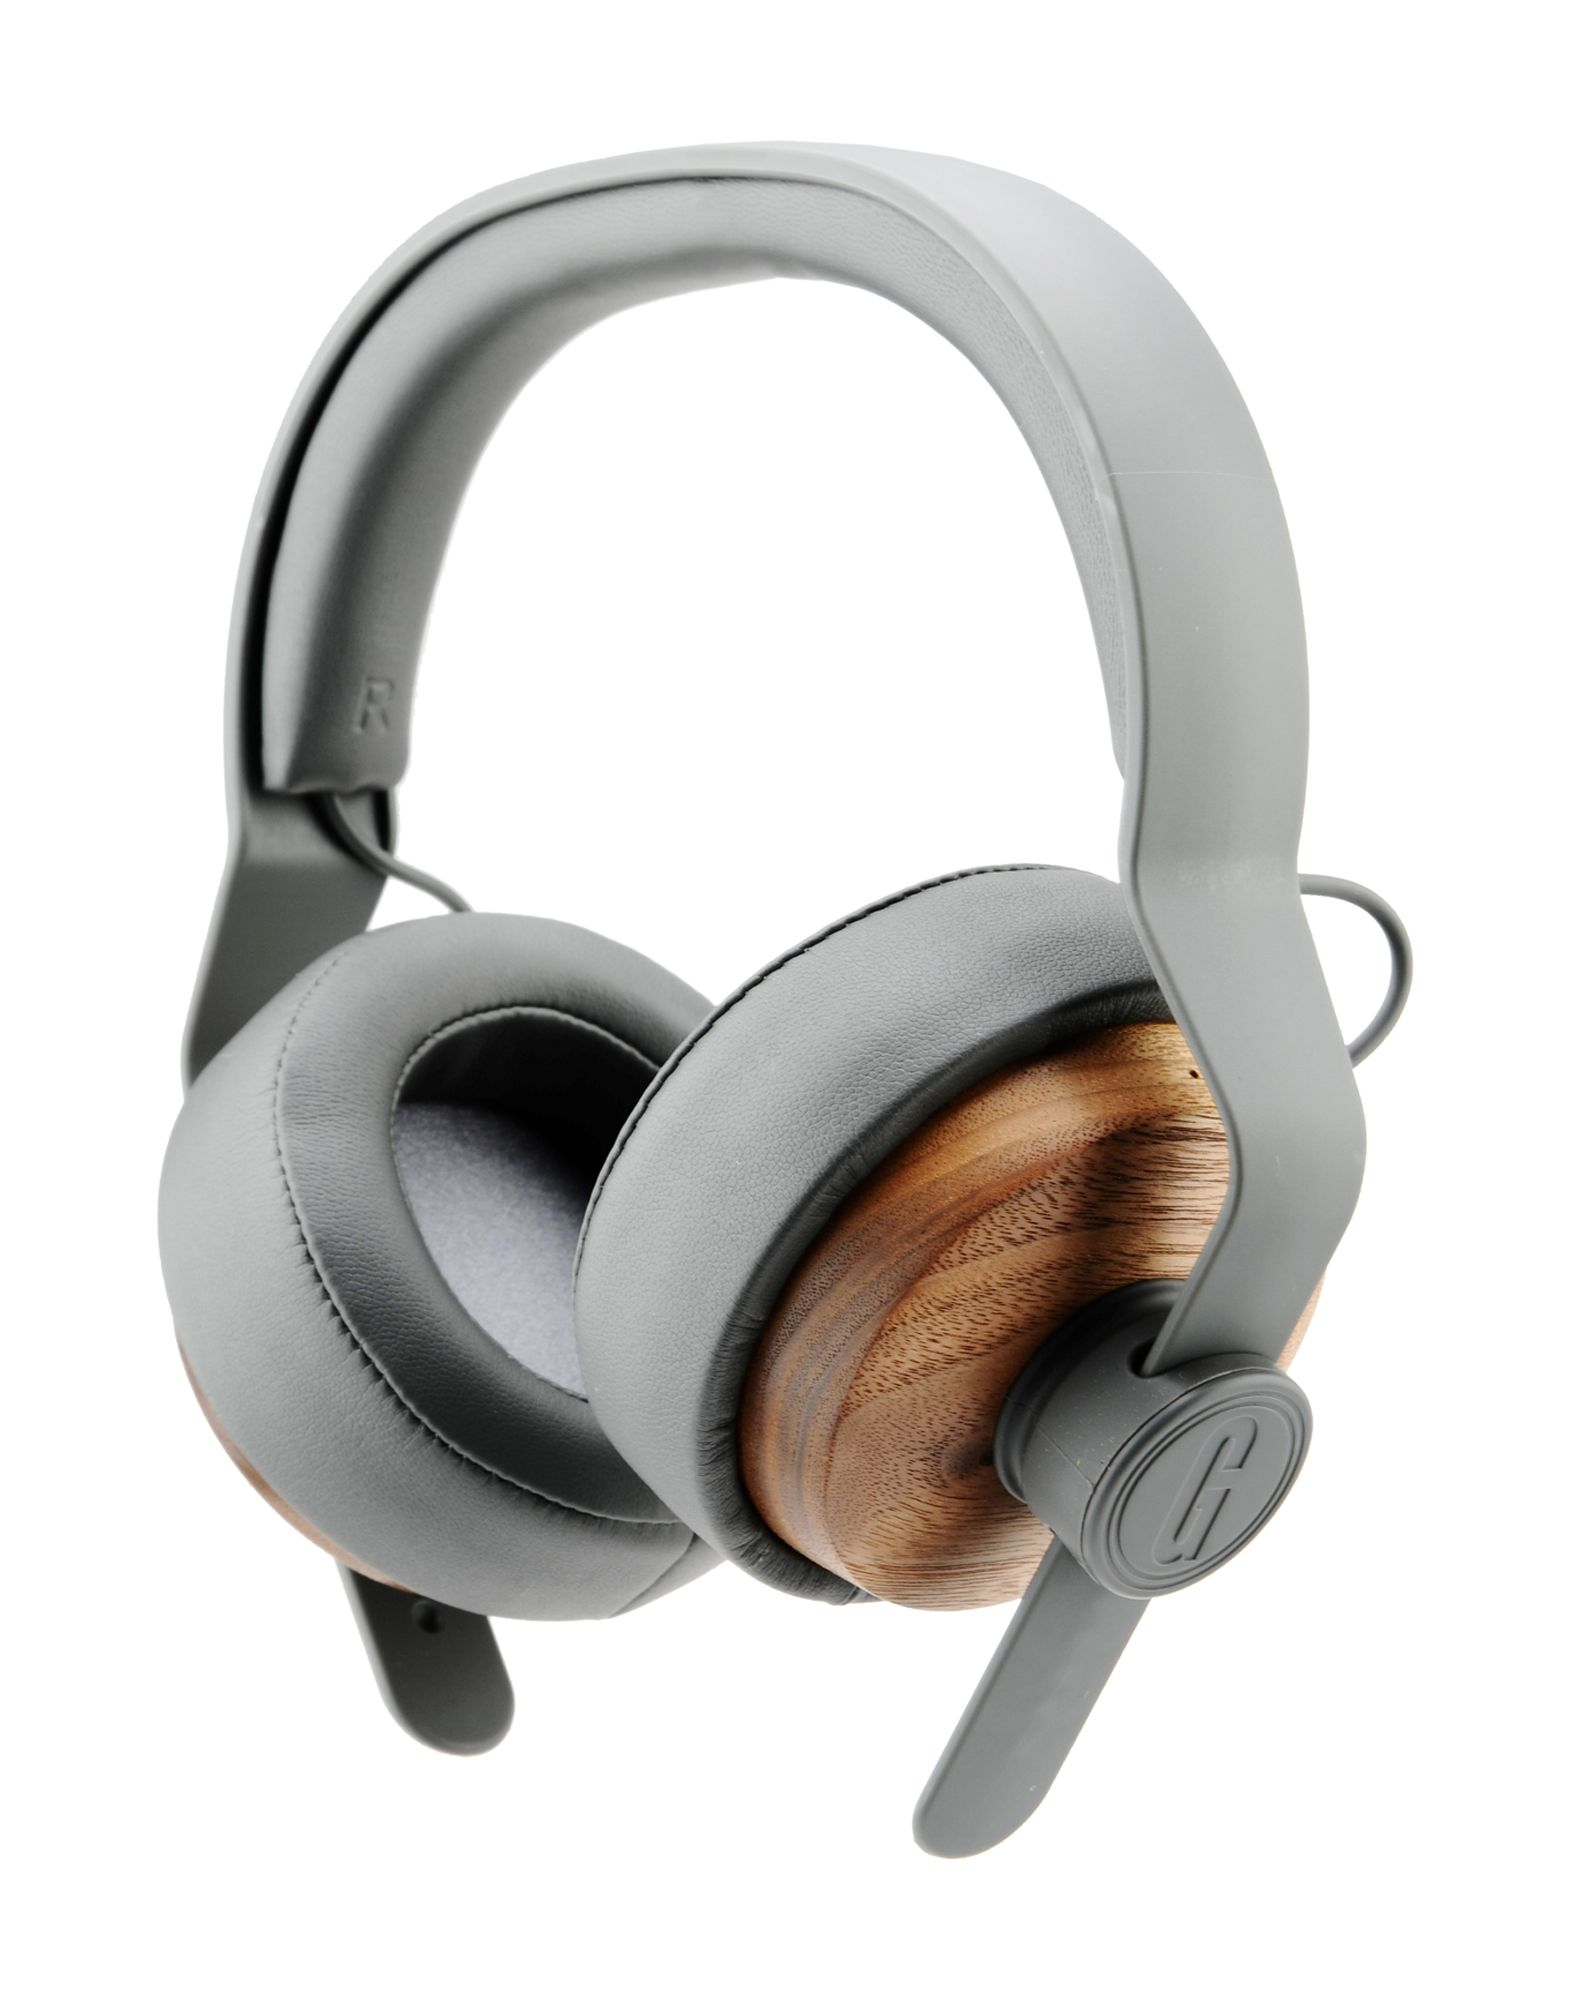 Oehp.01 - Cuffie Grain Audio - DESIGN+ART Grain Audio - Acquista online su